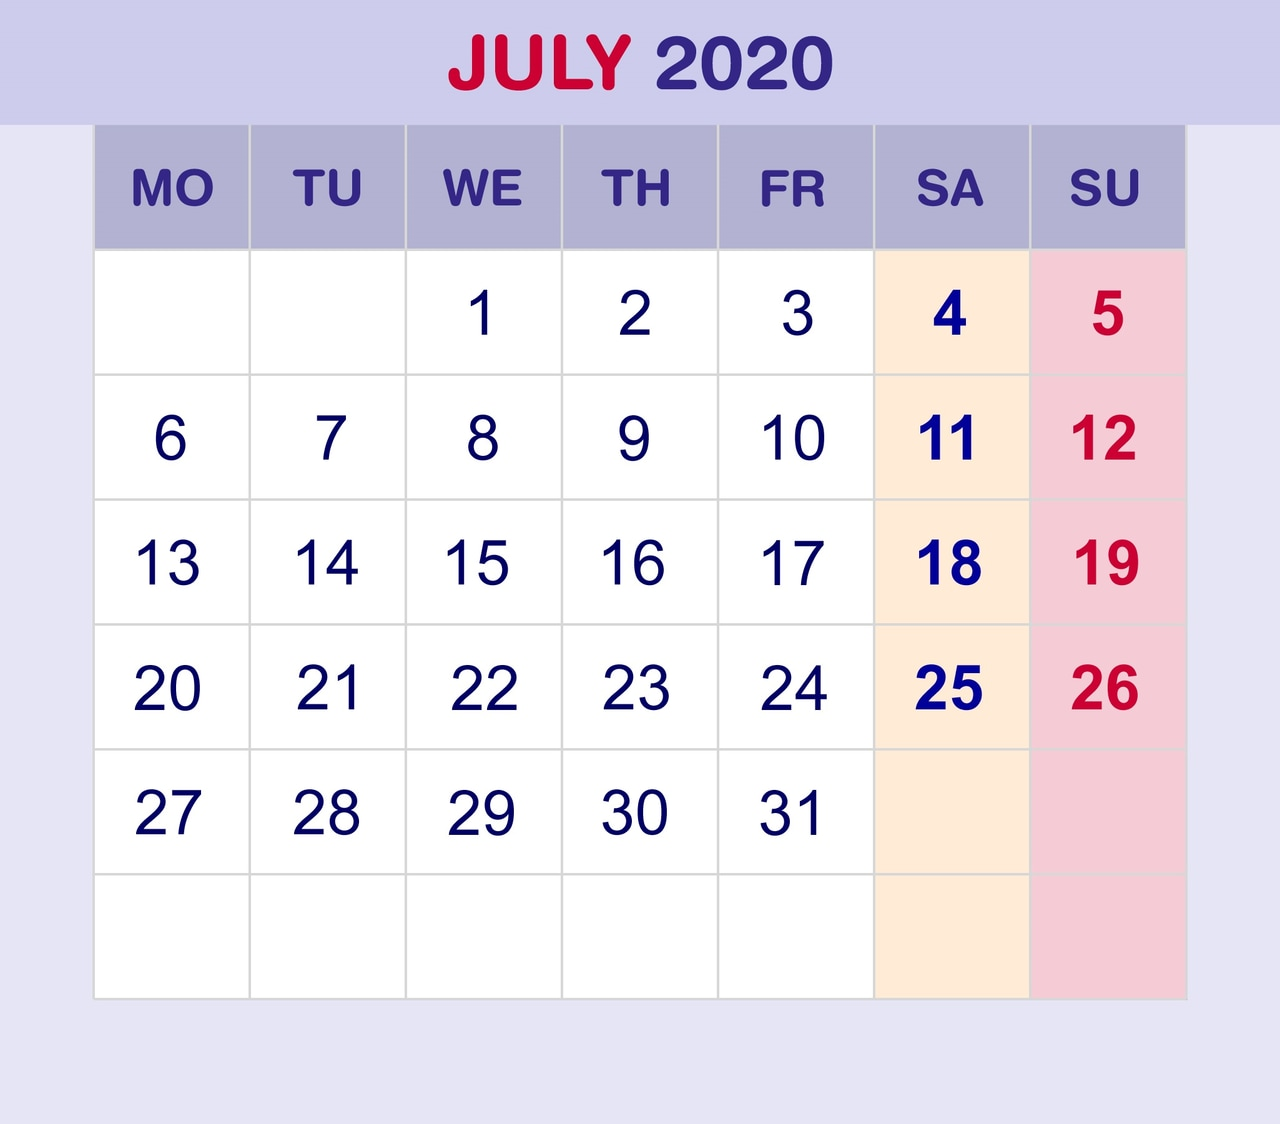 Blank June 2020 Calendar Template With Holidays